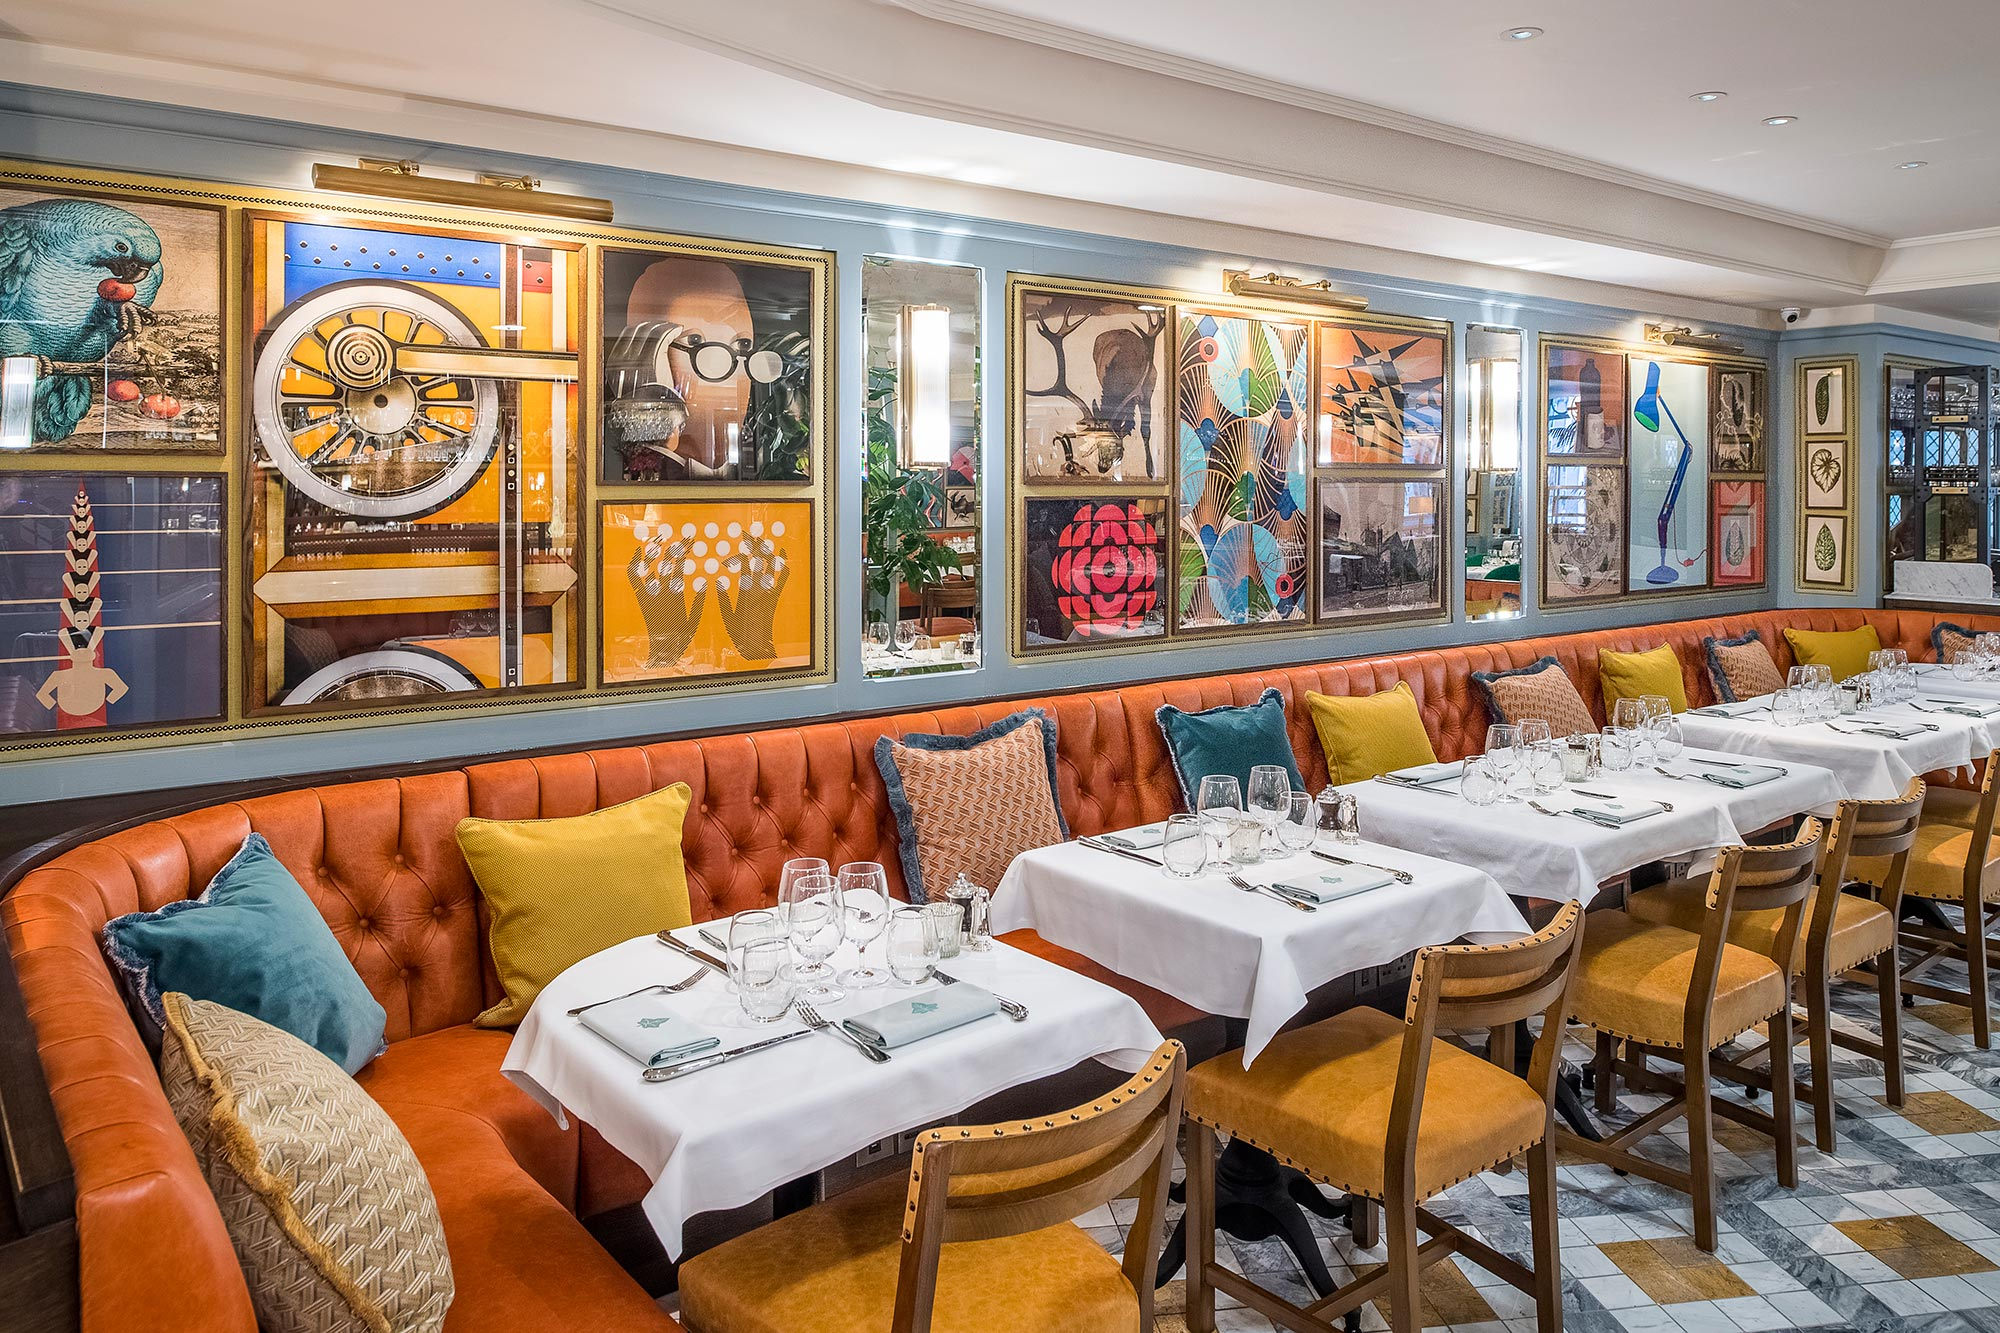 Photo Gallery Of Restaurant Image Gallery The Ivy Cambridge Brasserie